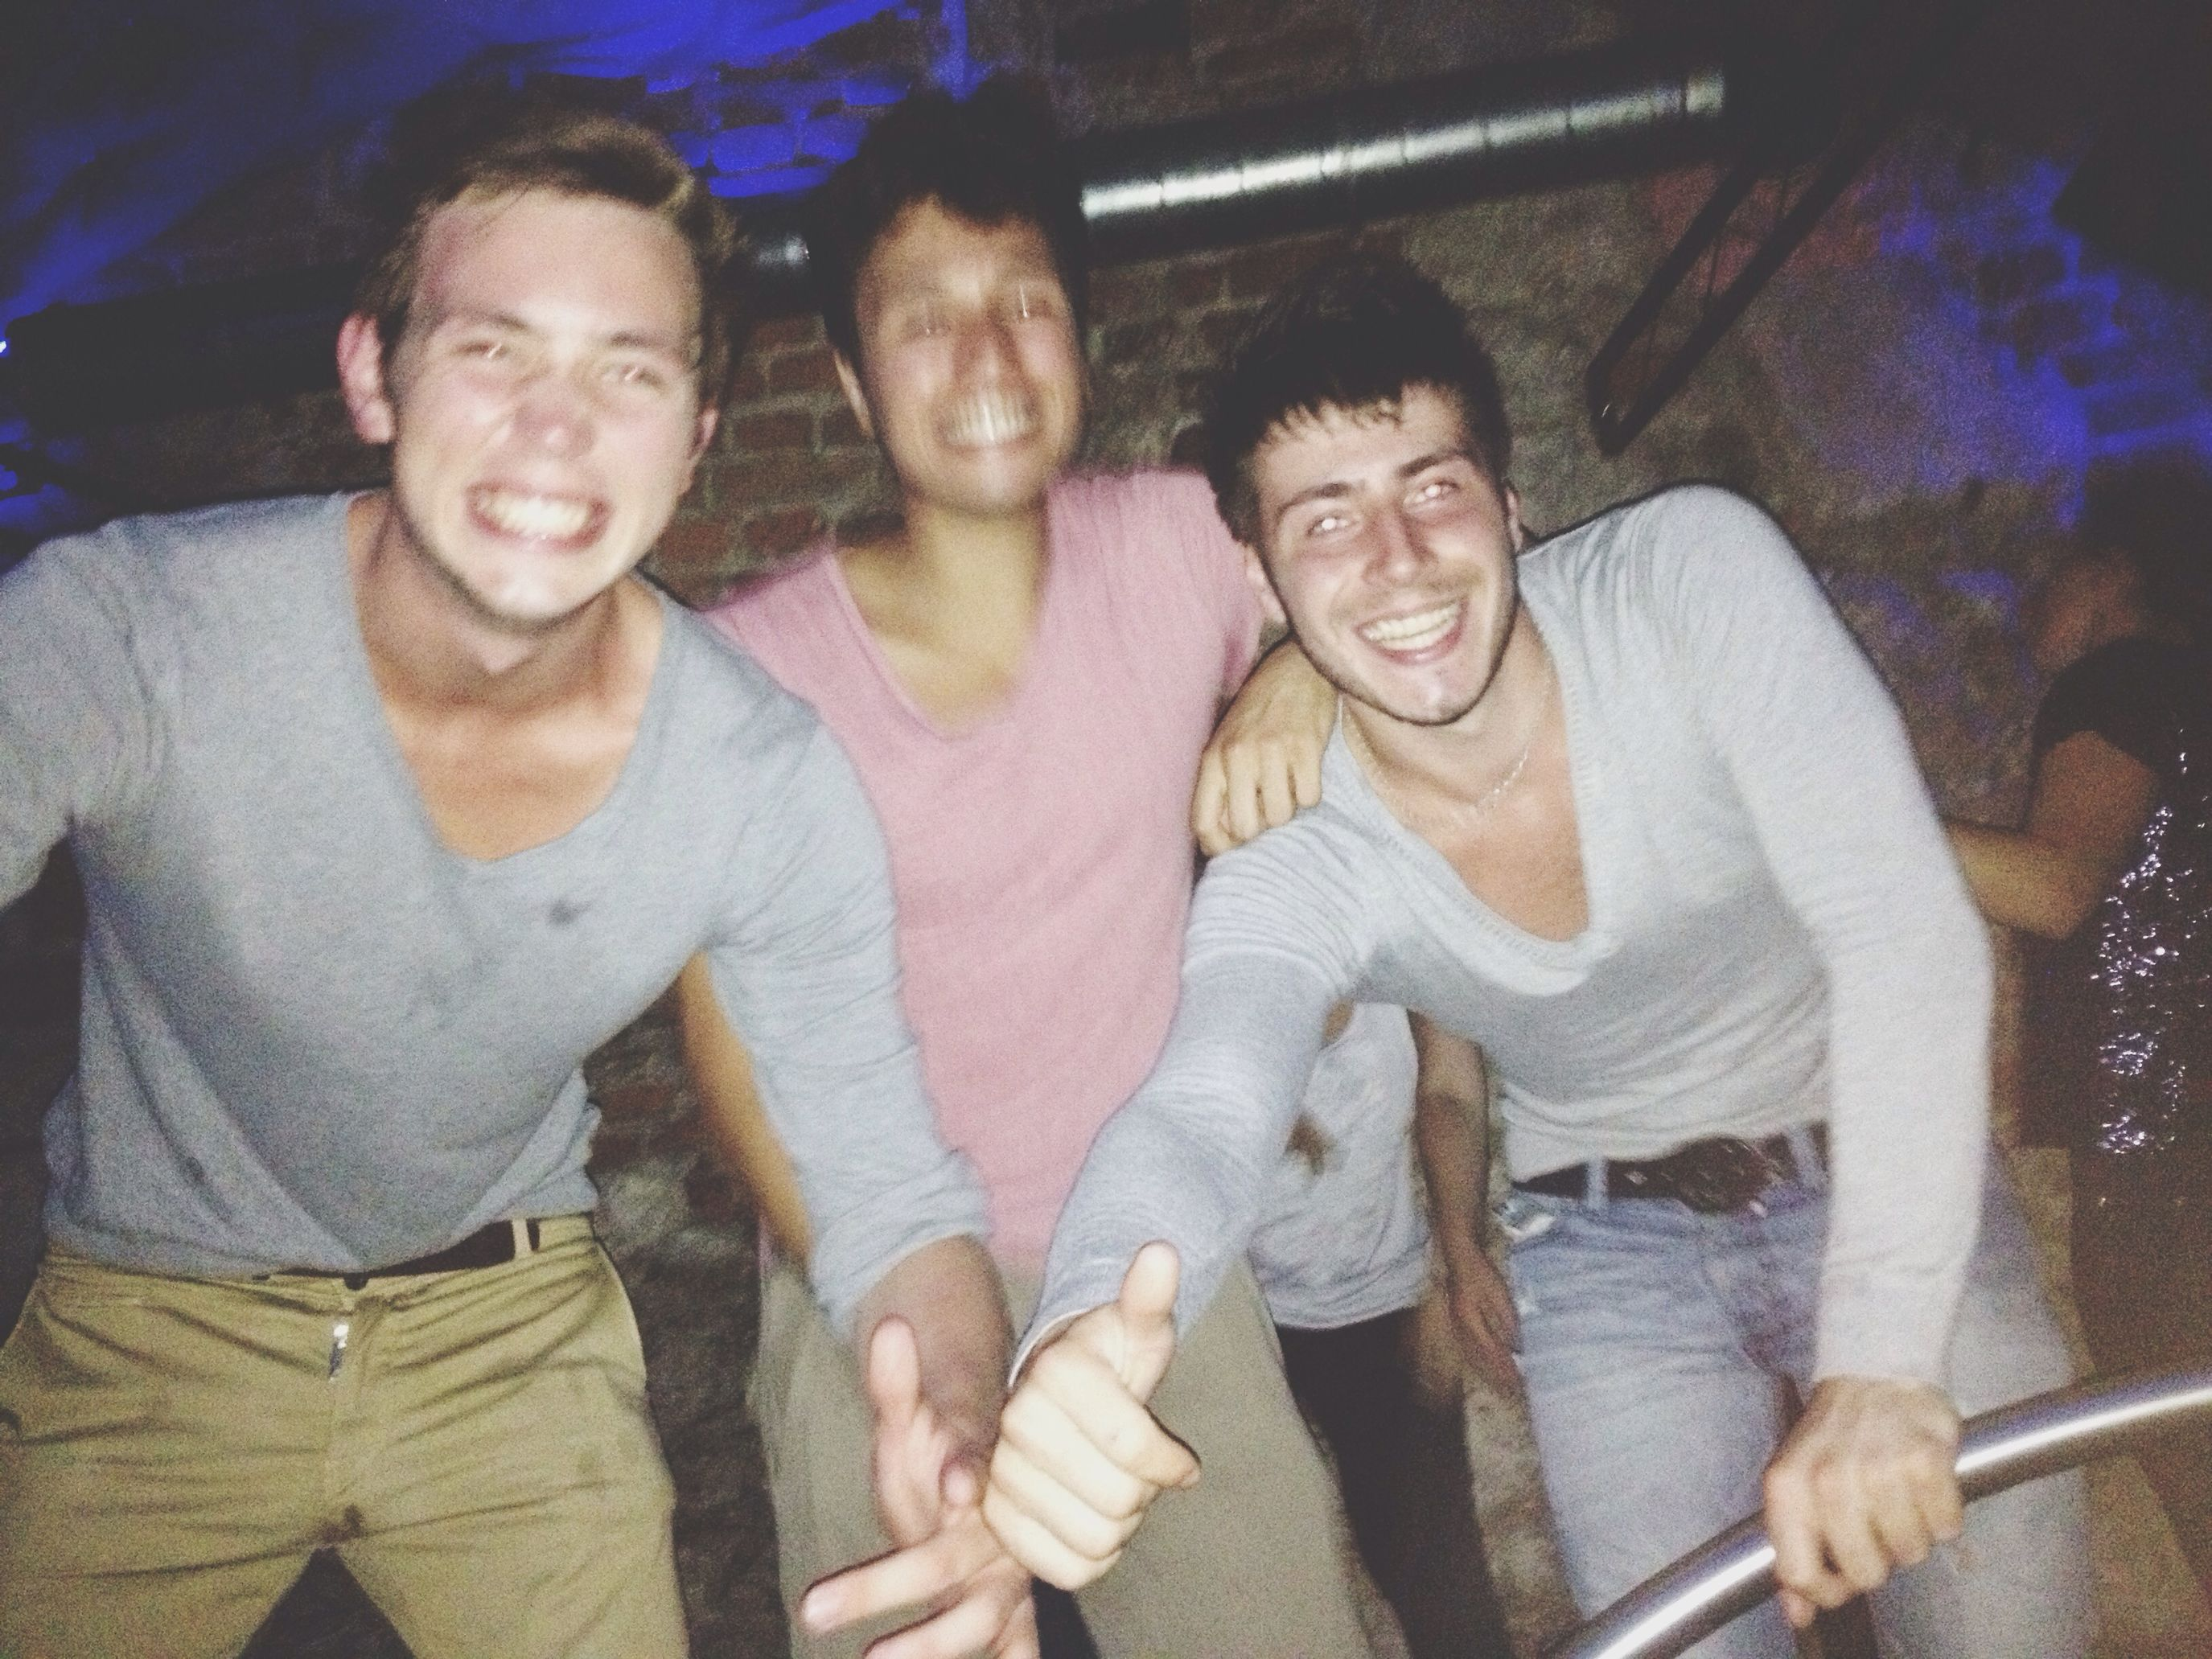 One Of That Crazy Night Bromo